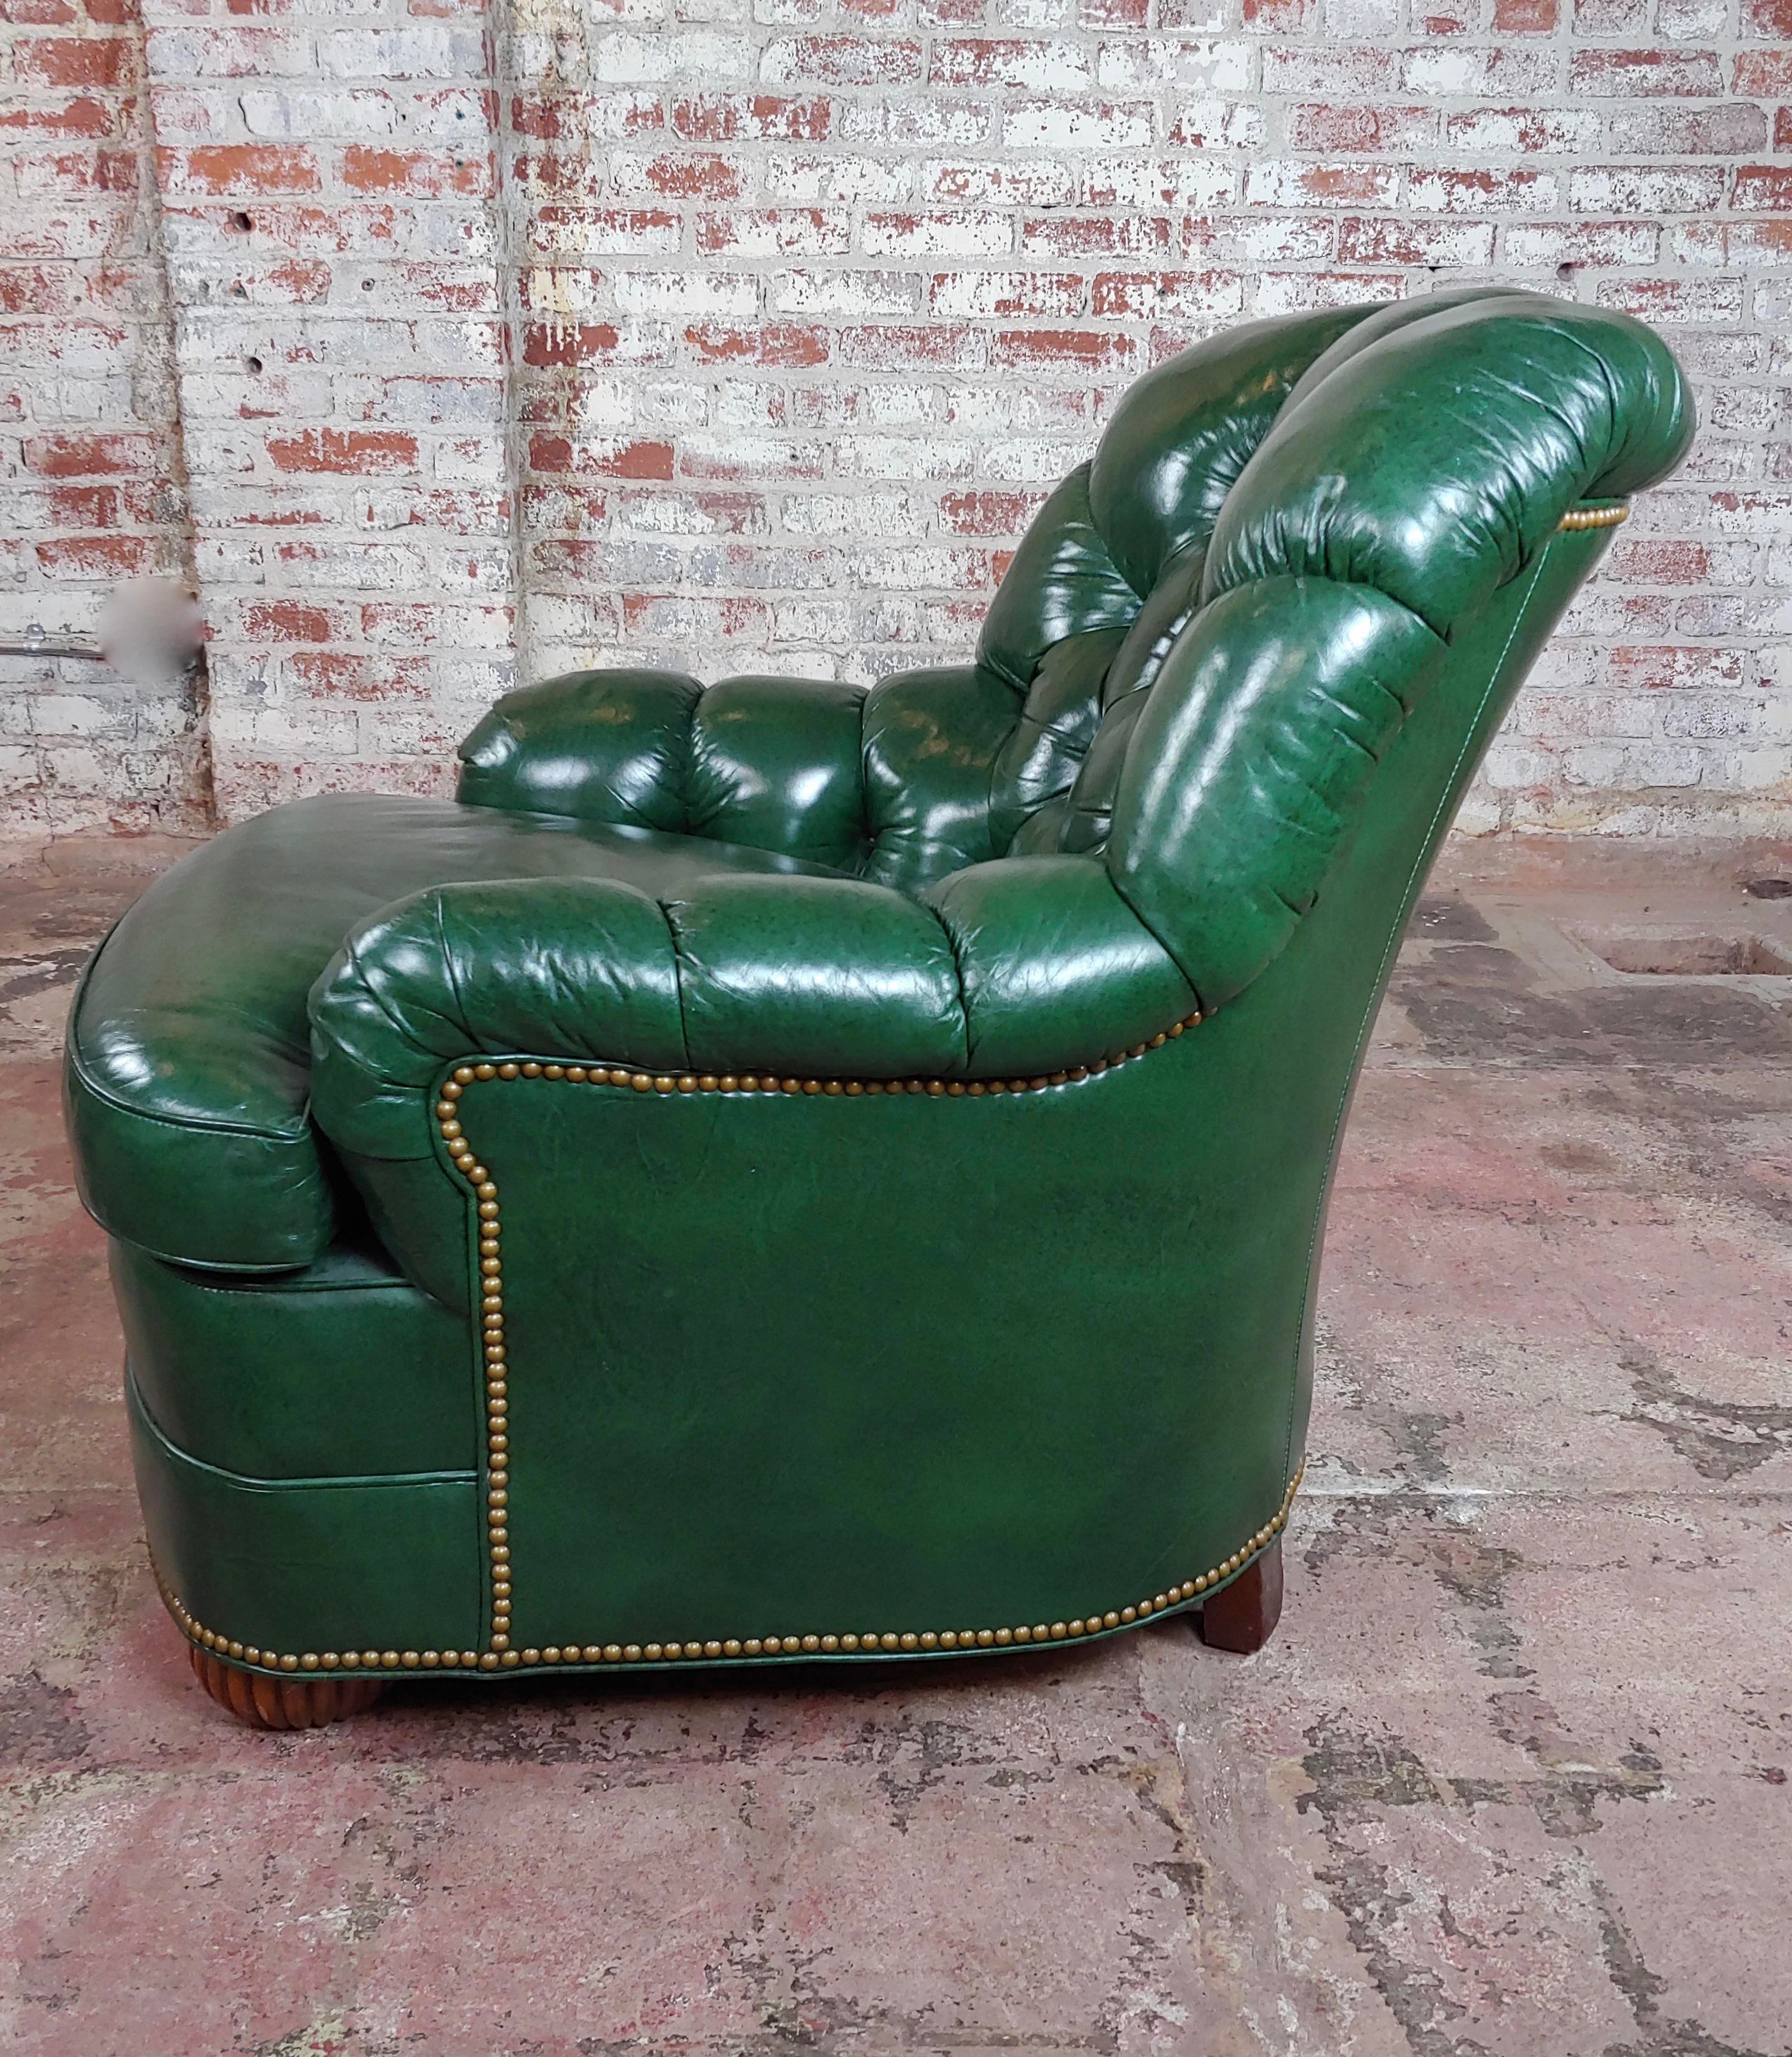 Hancock U0026 Moore Tufted Green Leather Club Chair W/Ottoman For Sale   Image 4